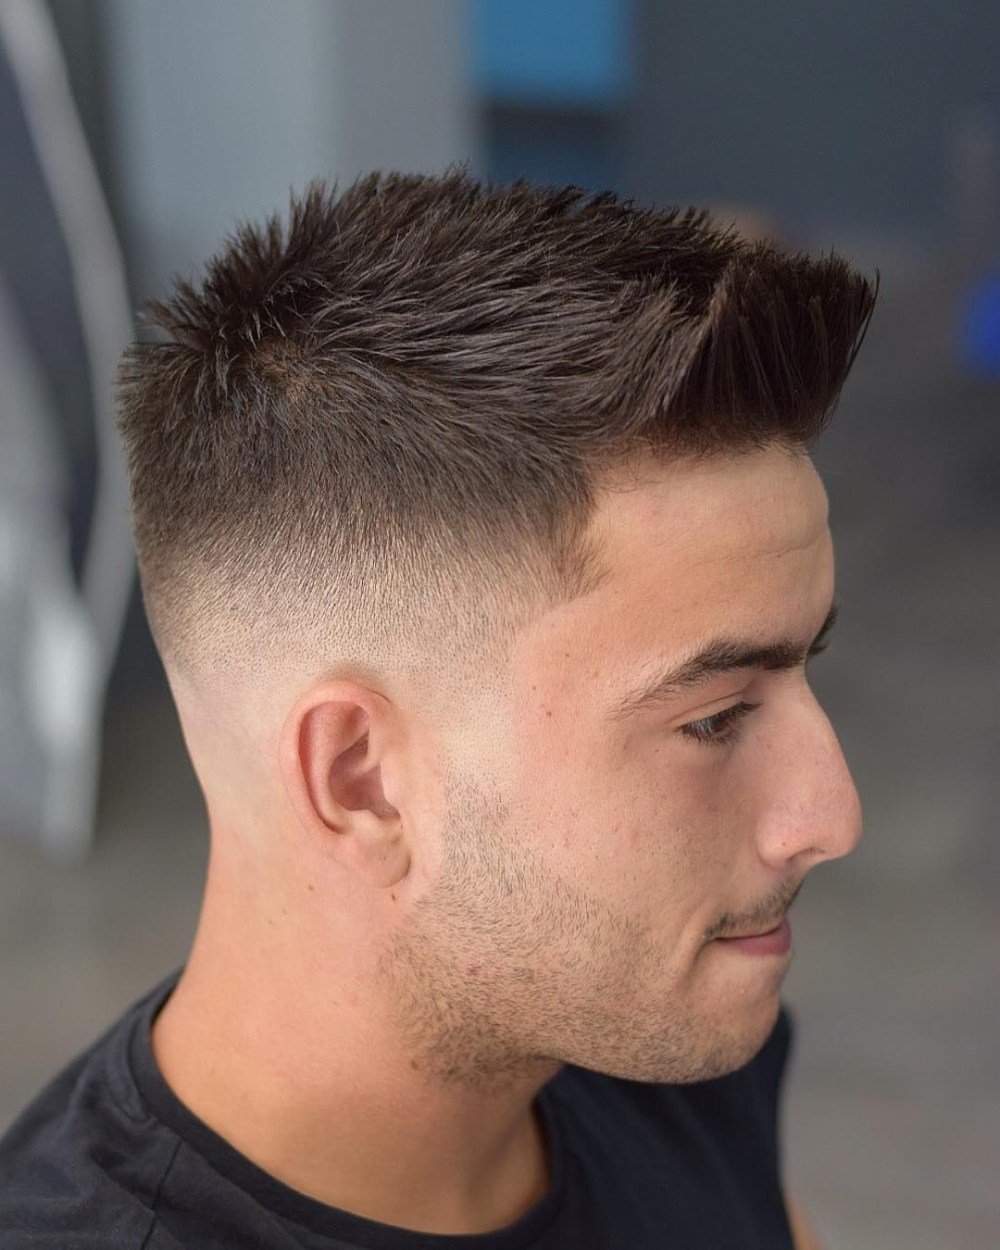 21 Short Fade Haircuts For Guys To Make A Style Statement Haircuts Hairstyles 2020 In 2020 Short Fade Haircut Mens Hairstyles Short Mens Haircuts Short